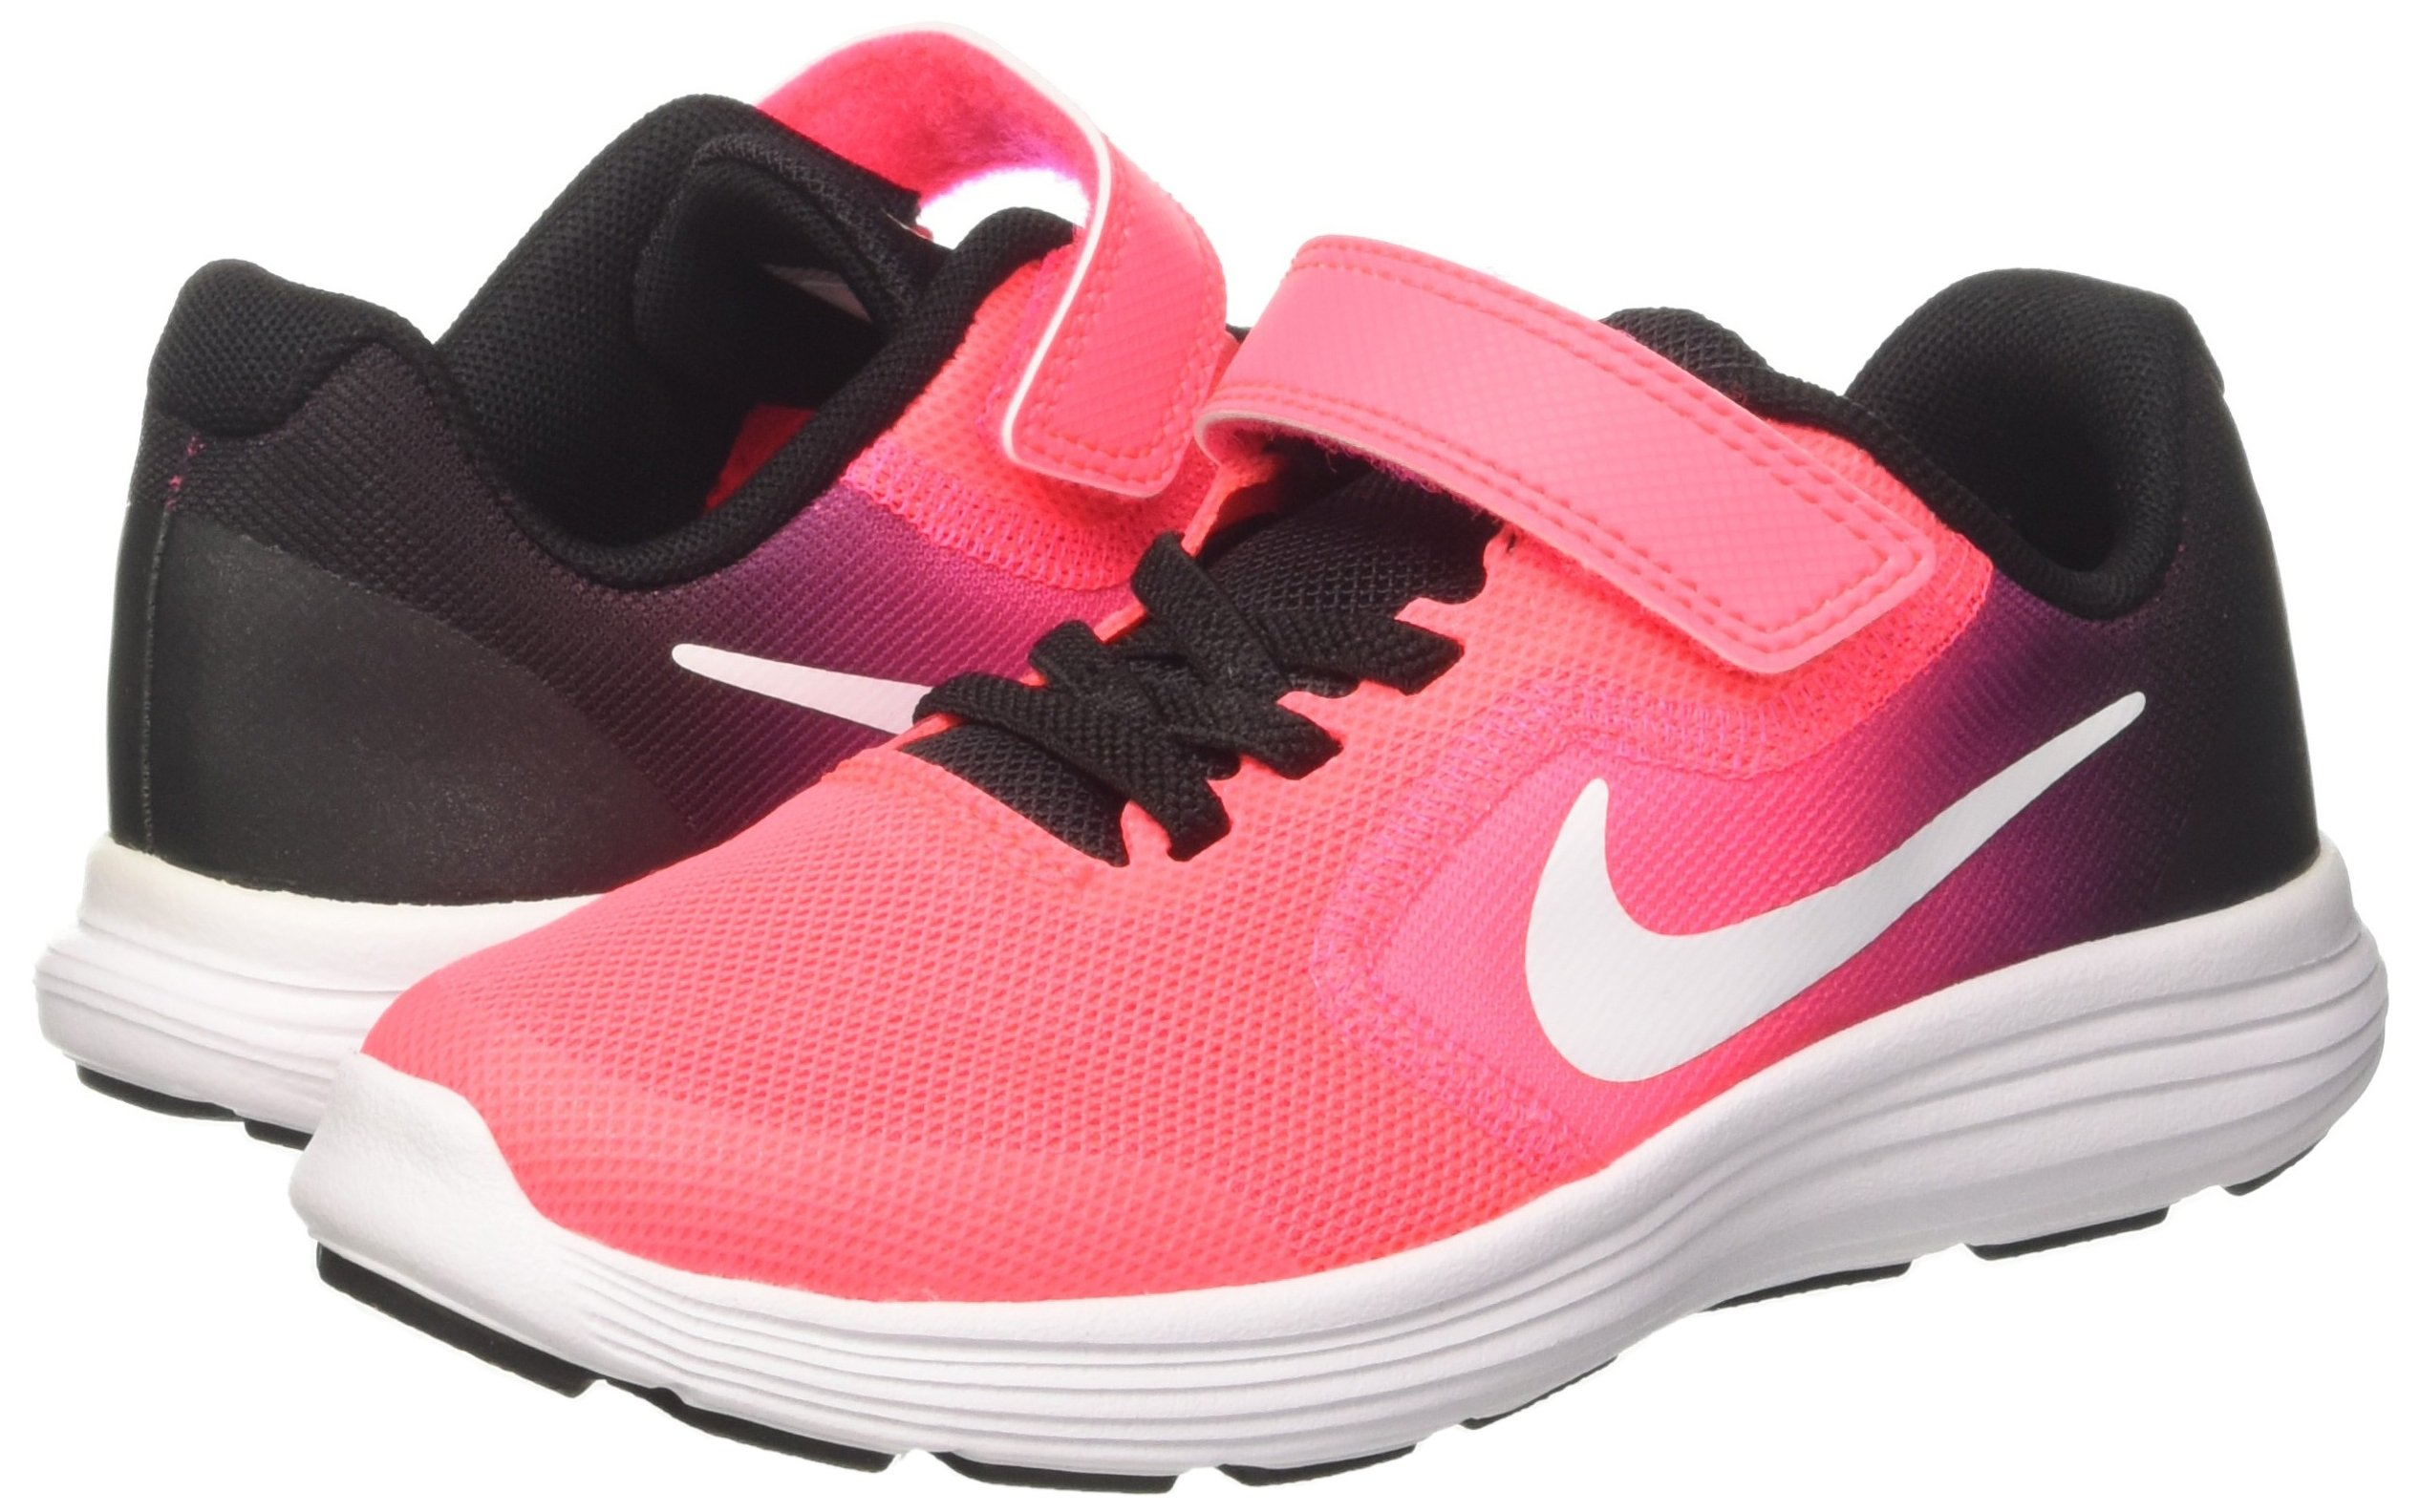 NIKE Kids' Revolution 3 (Psv) Running-Shoes, Black/White/Racer Pink/Black, 1 M US Little Kid by Nike (Image #5)